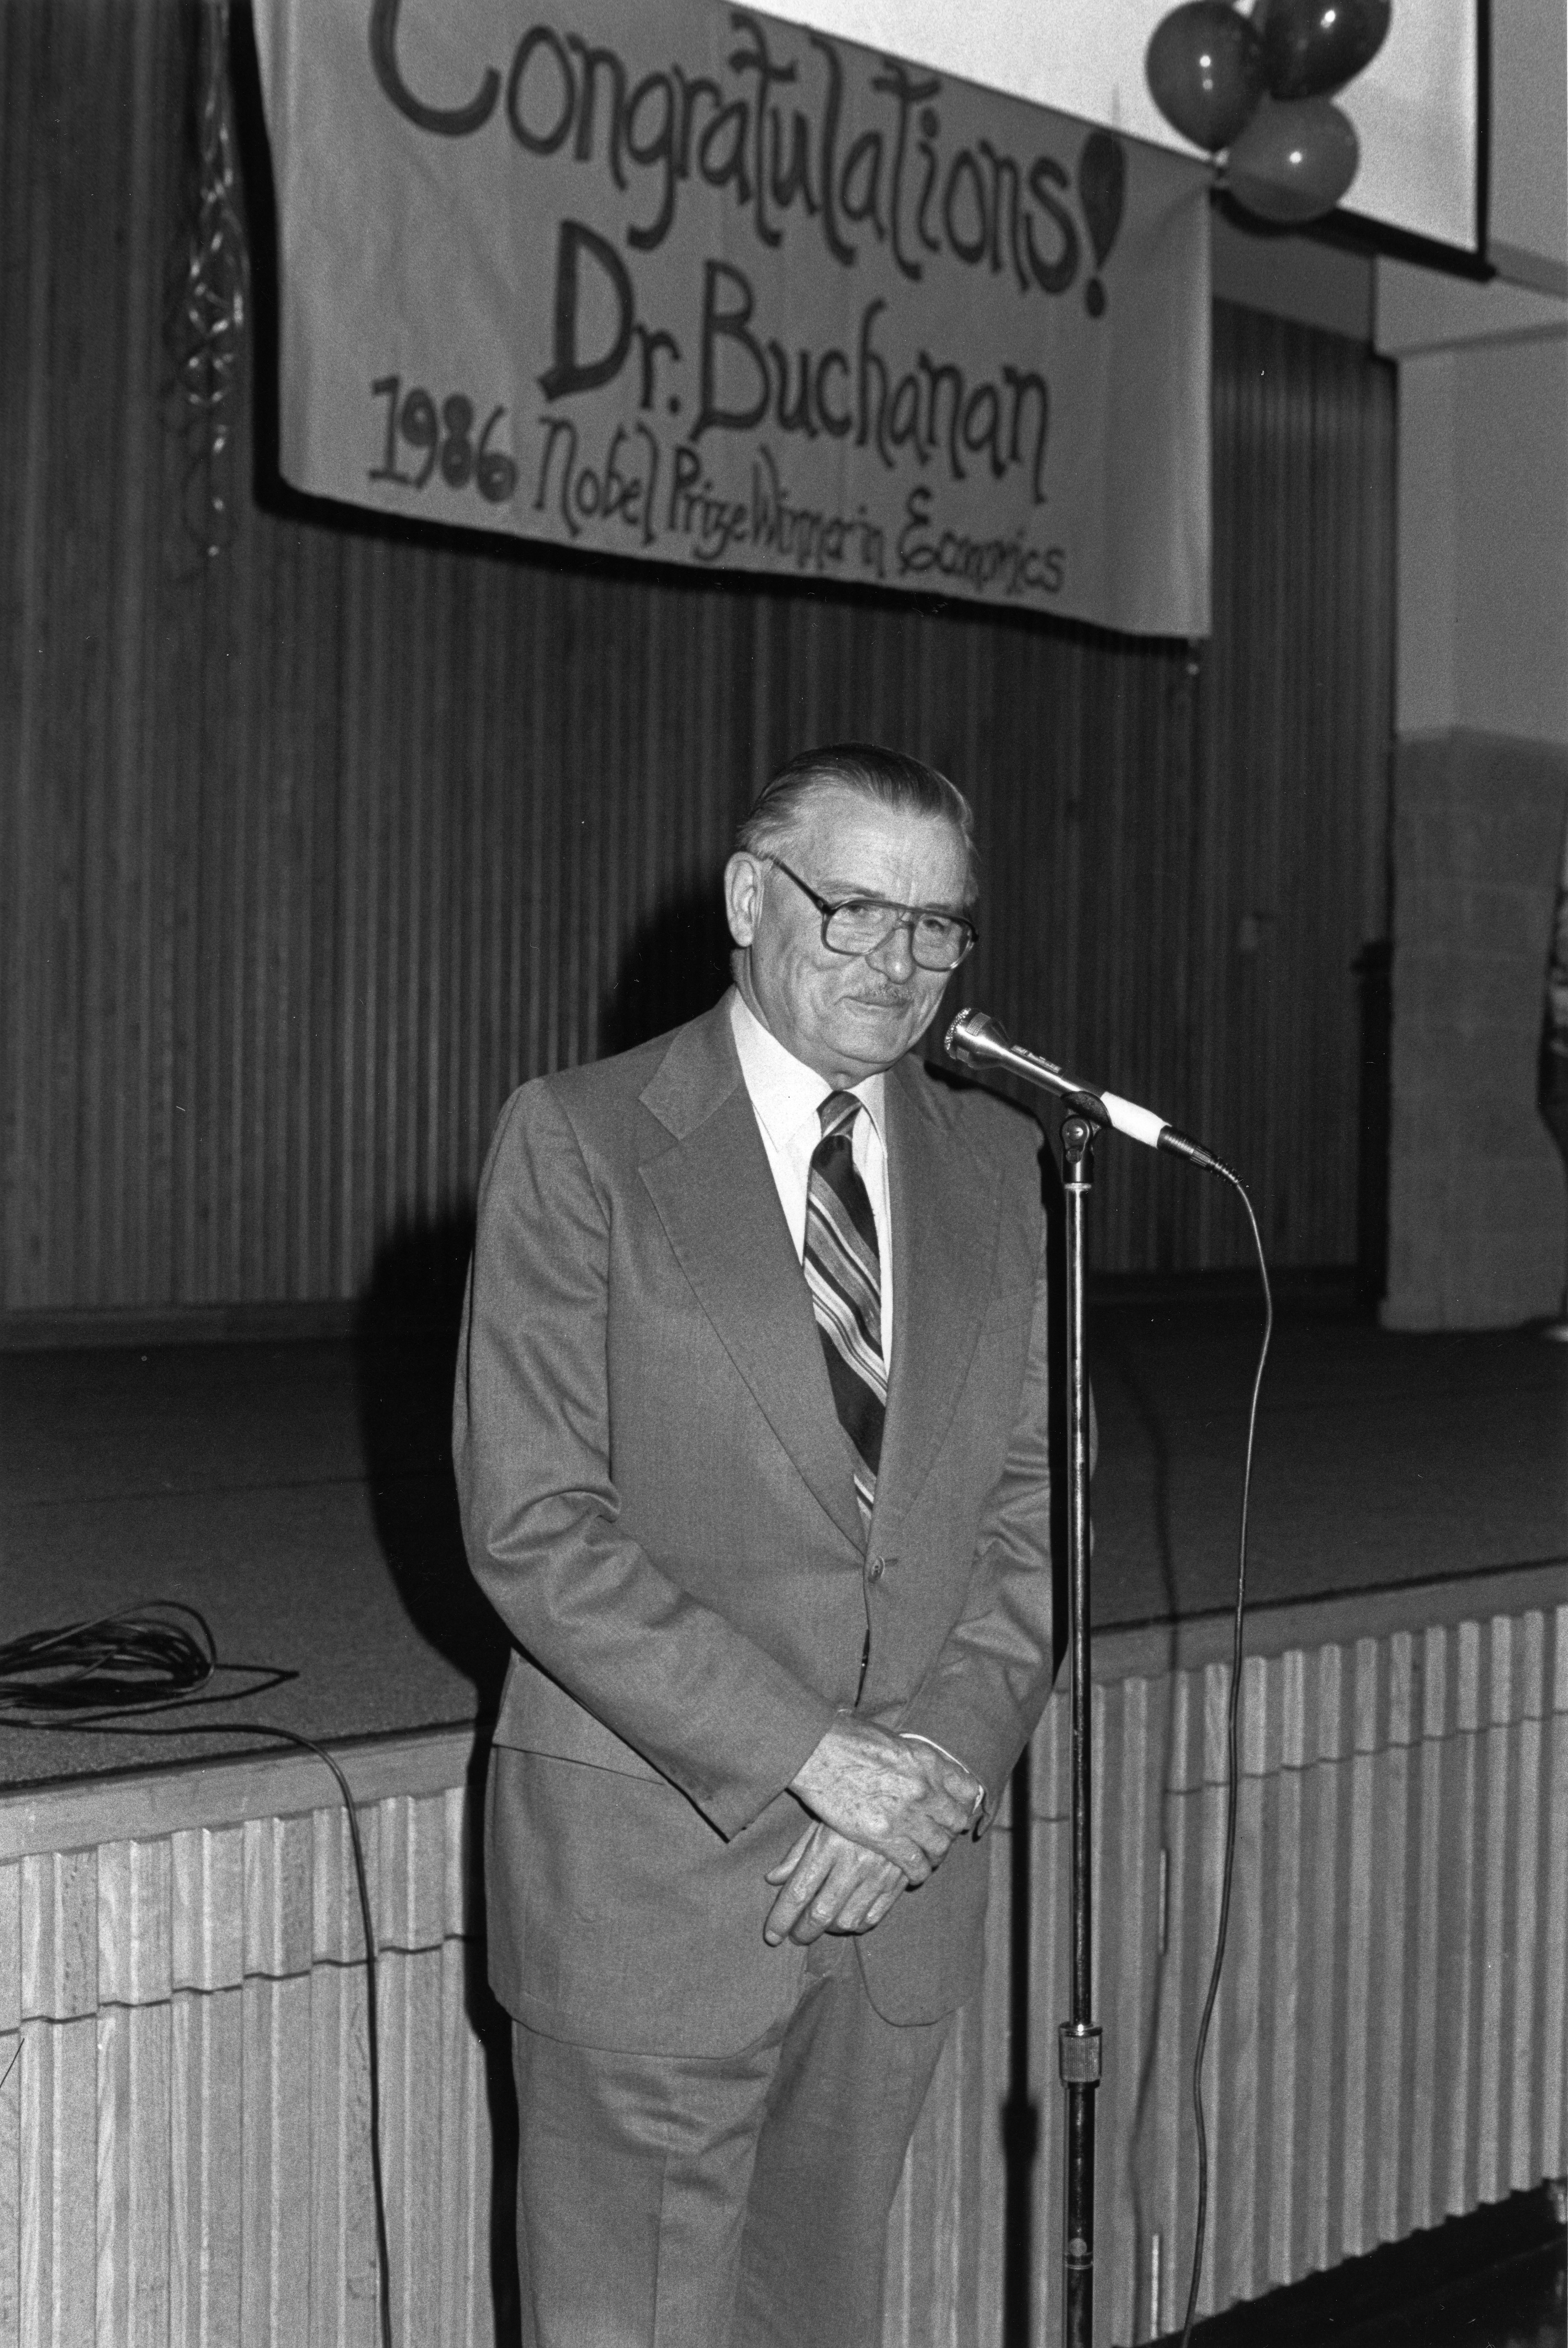 George Mason University Nobel laureate James M. Buchanan speaks at a reception in his honor, October 1986.